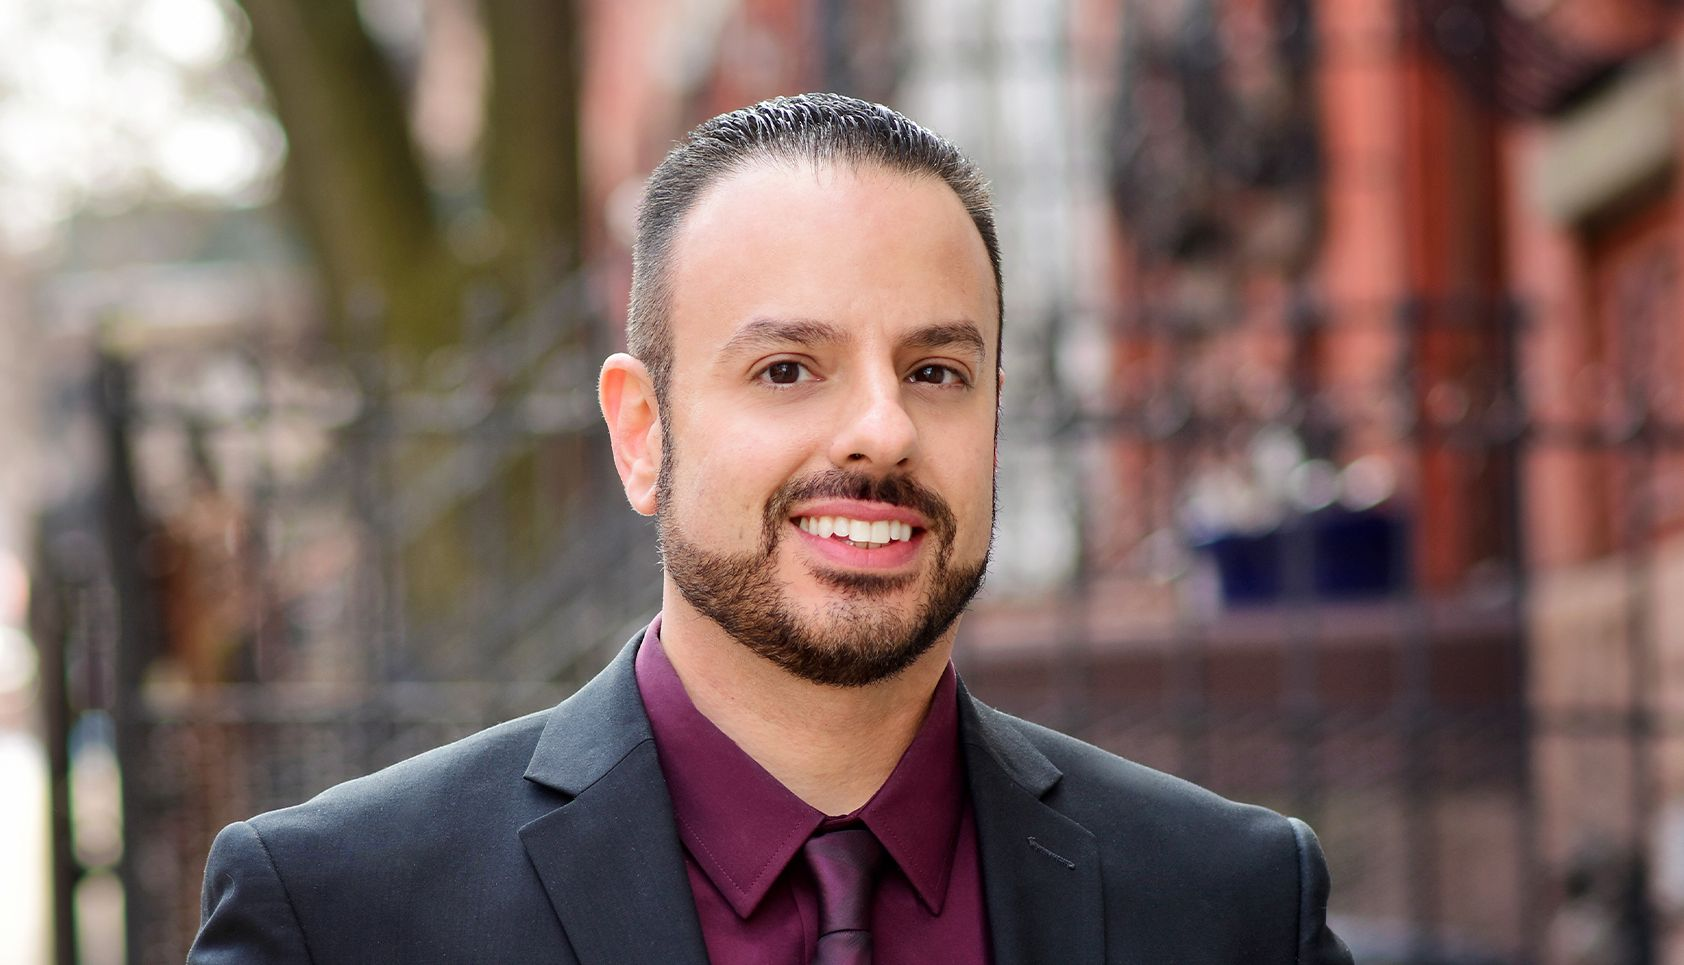 Christos Drakakis is a Licensed Real Estate Salesperson at HomeDax Real Estate NYC. Contact Christos today to discuss your sale, purchase or rental needs.